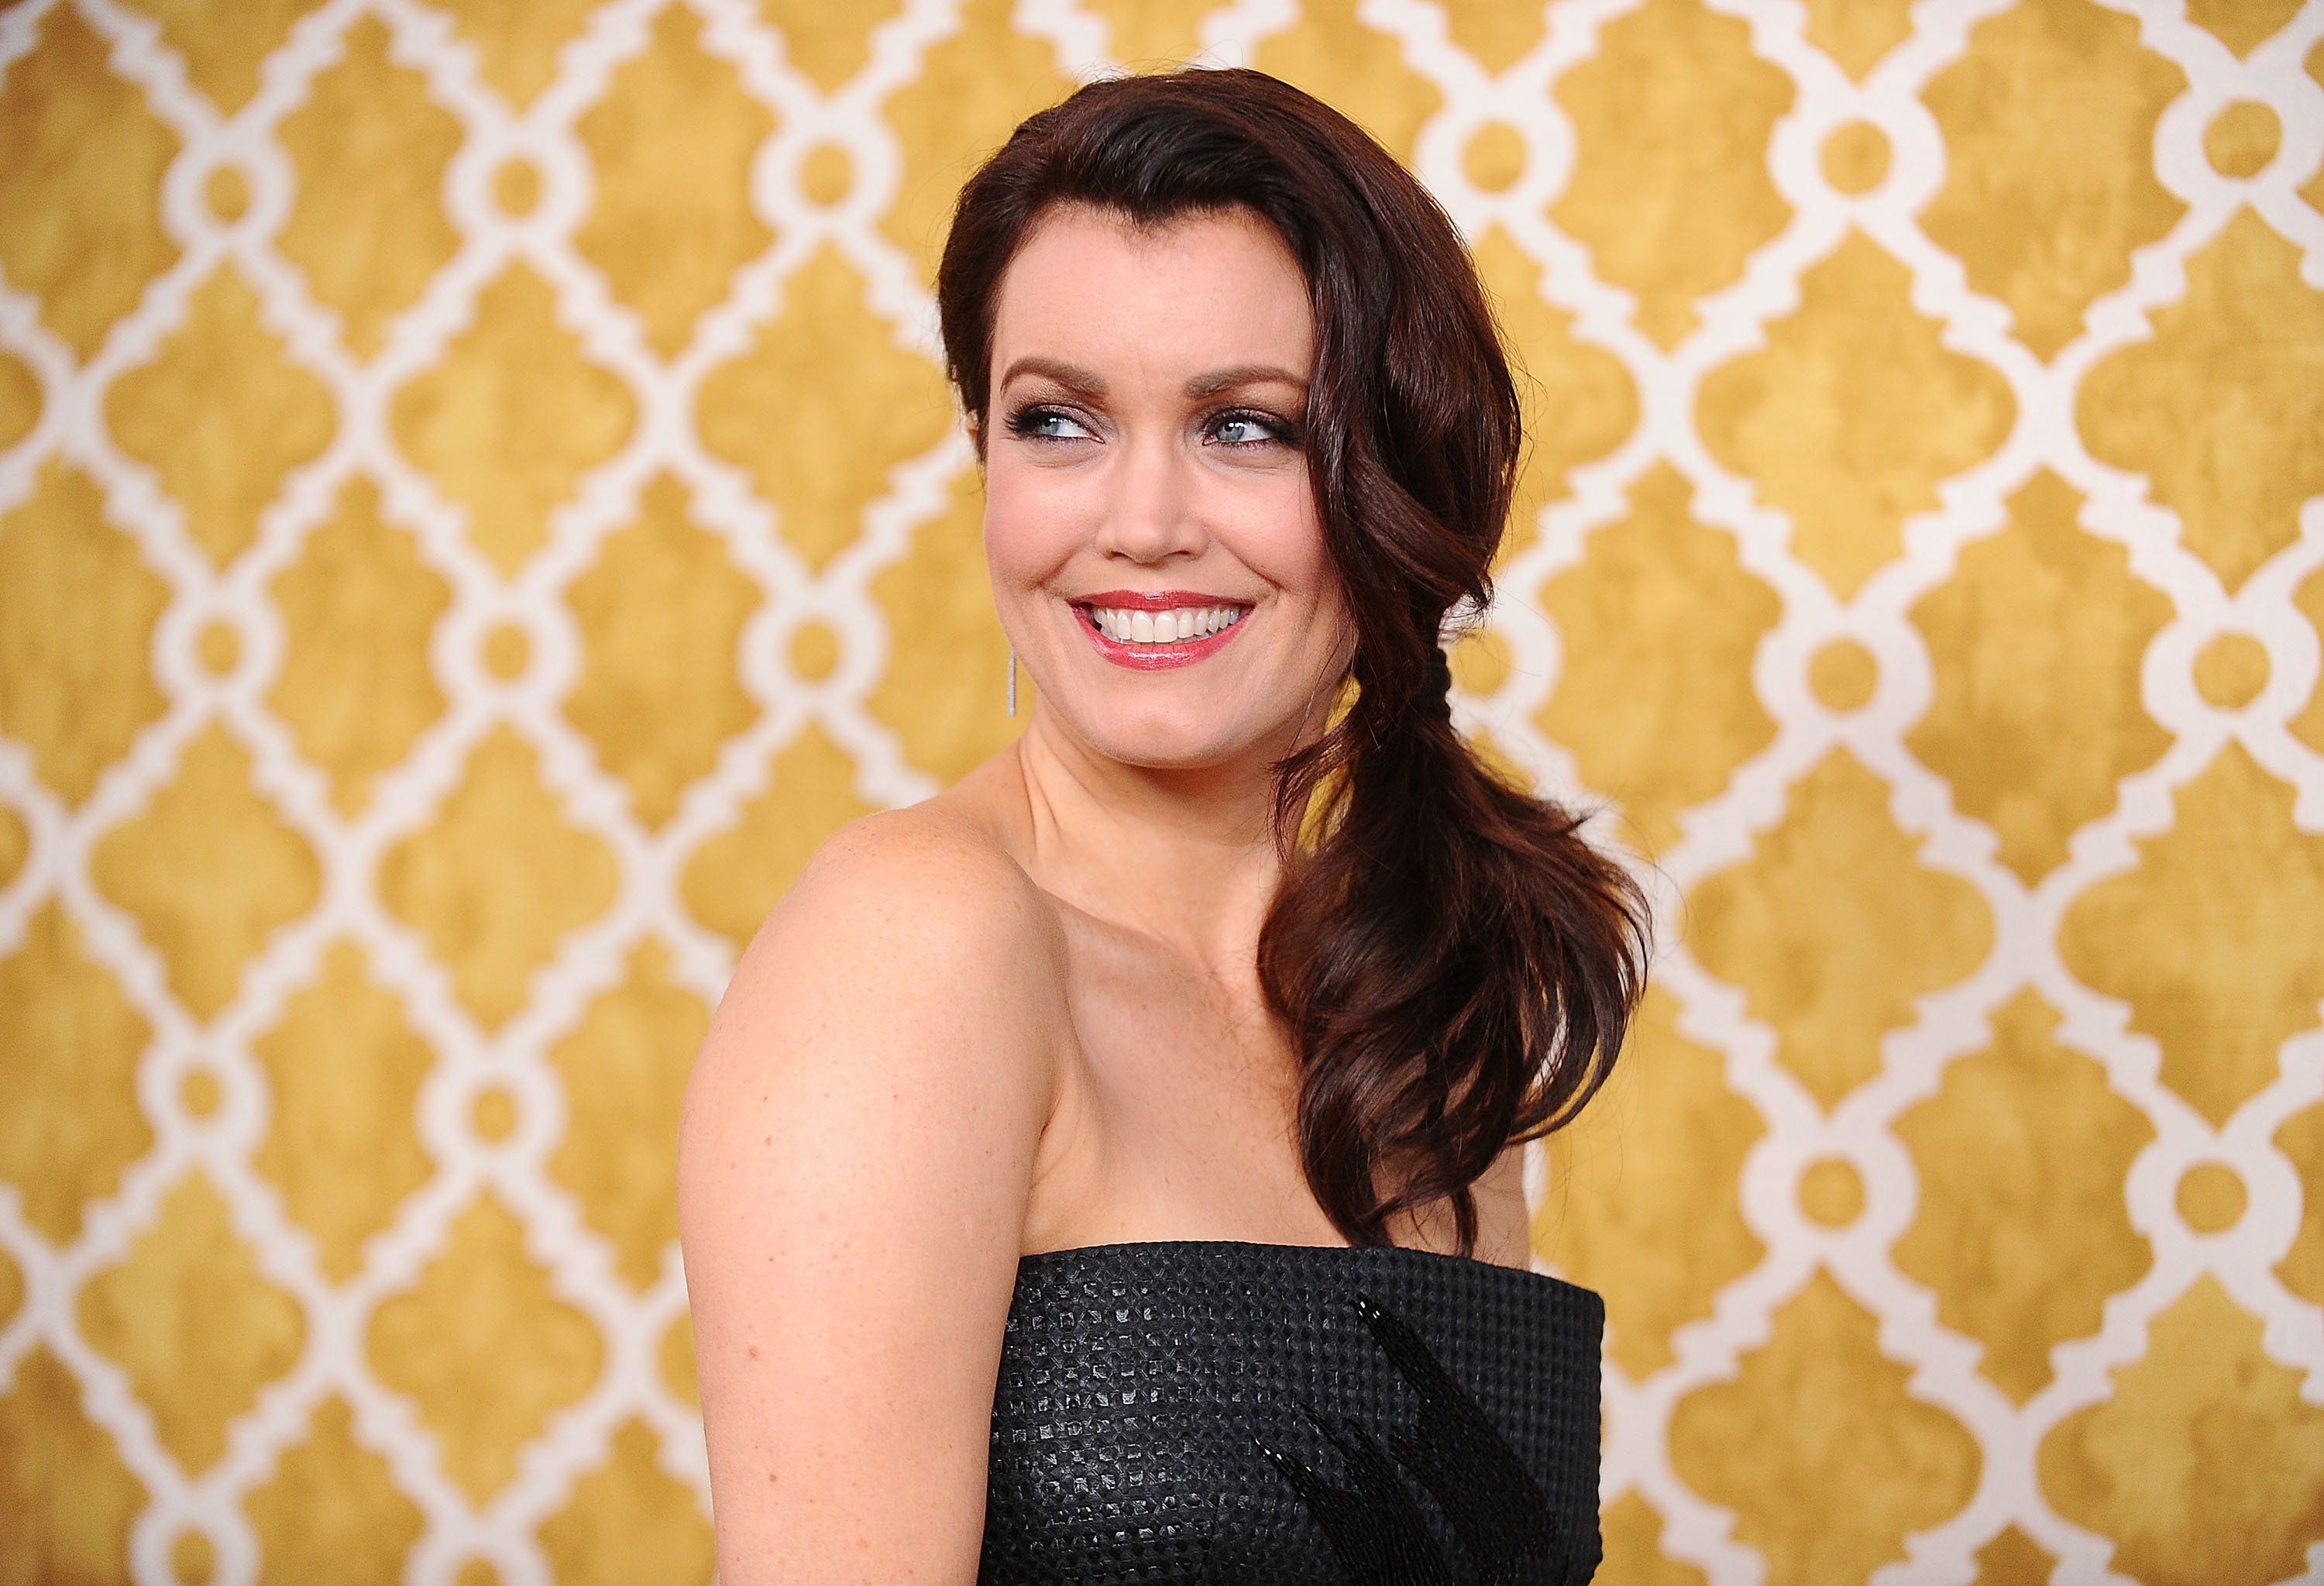 HOLLYWOOD, CALIFORNIA - MARCH 31:  Actress Bellamy Young attends the premiere of 'Confirmation' at Paramount Theater on the Paramount Studios lot on March 31, 2016 in Hollywood, California.  (Photo by Jason LaVeris/FilmMagic)